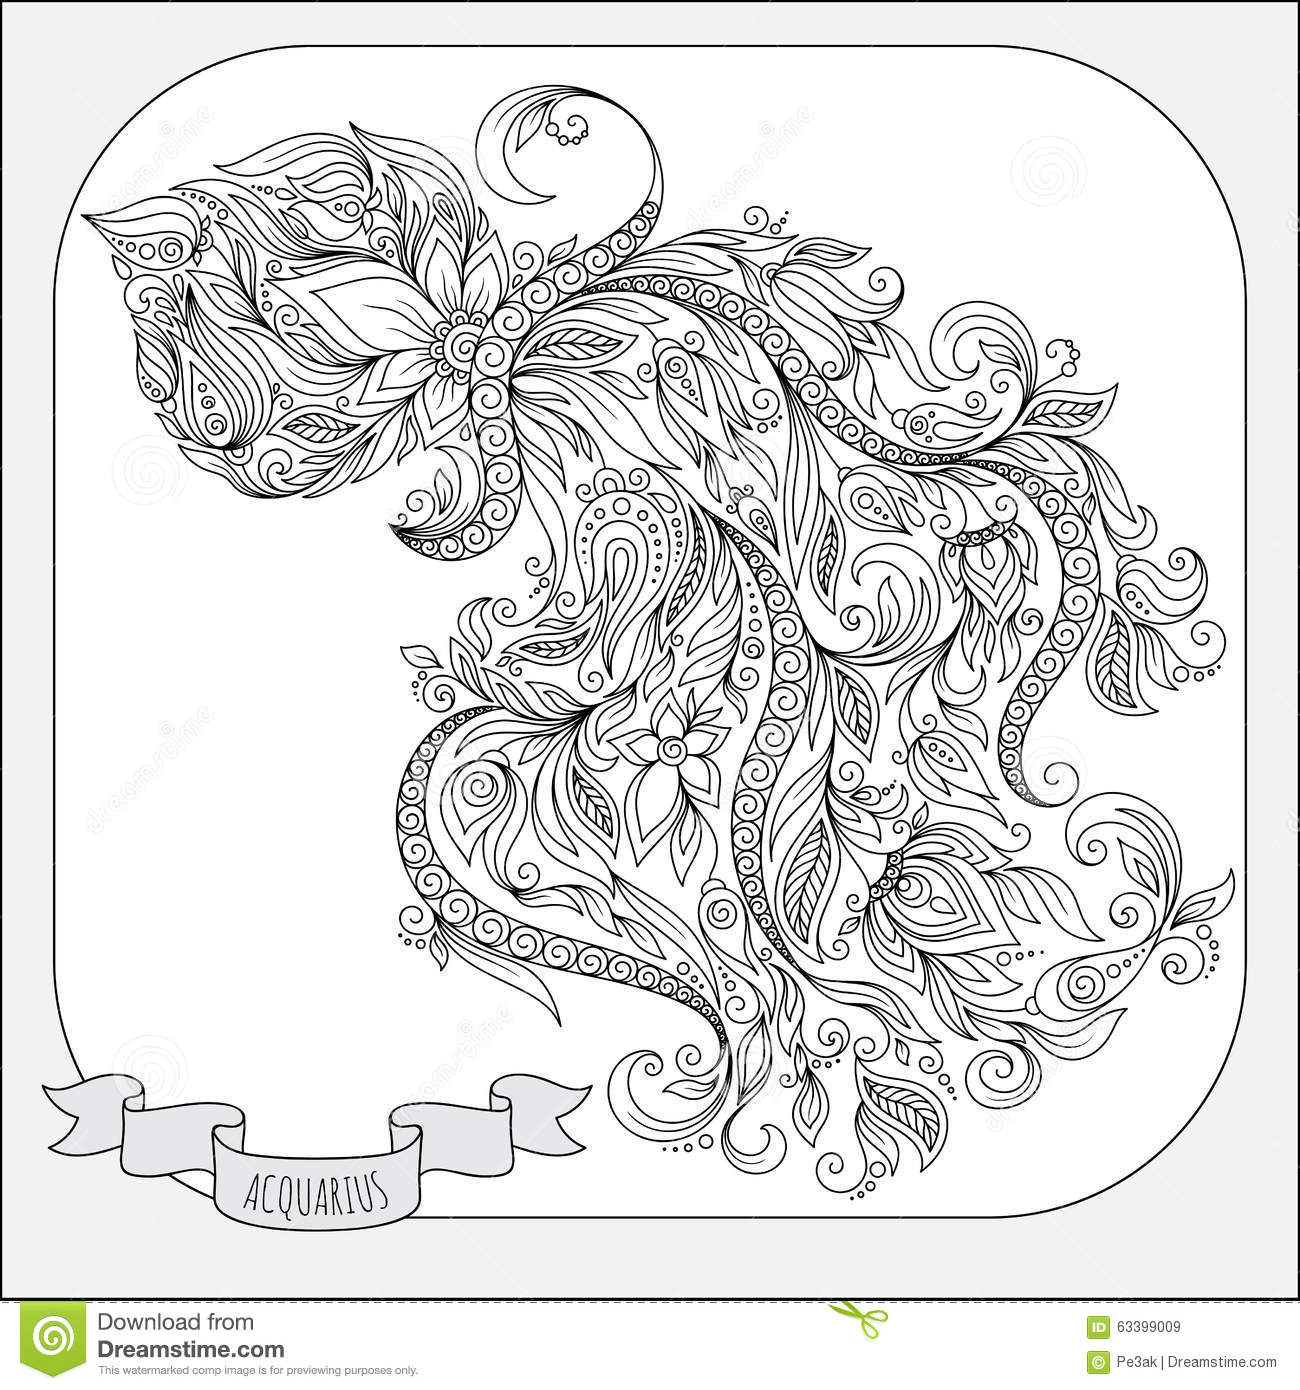 Zodiac Line Drawing : Hand drawn pattern for coloring book zodiac aquarius